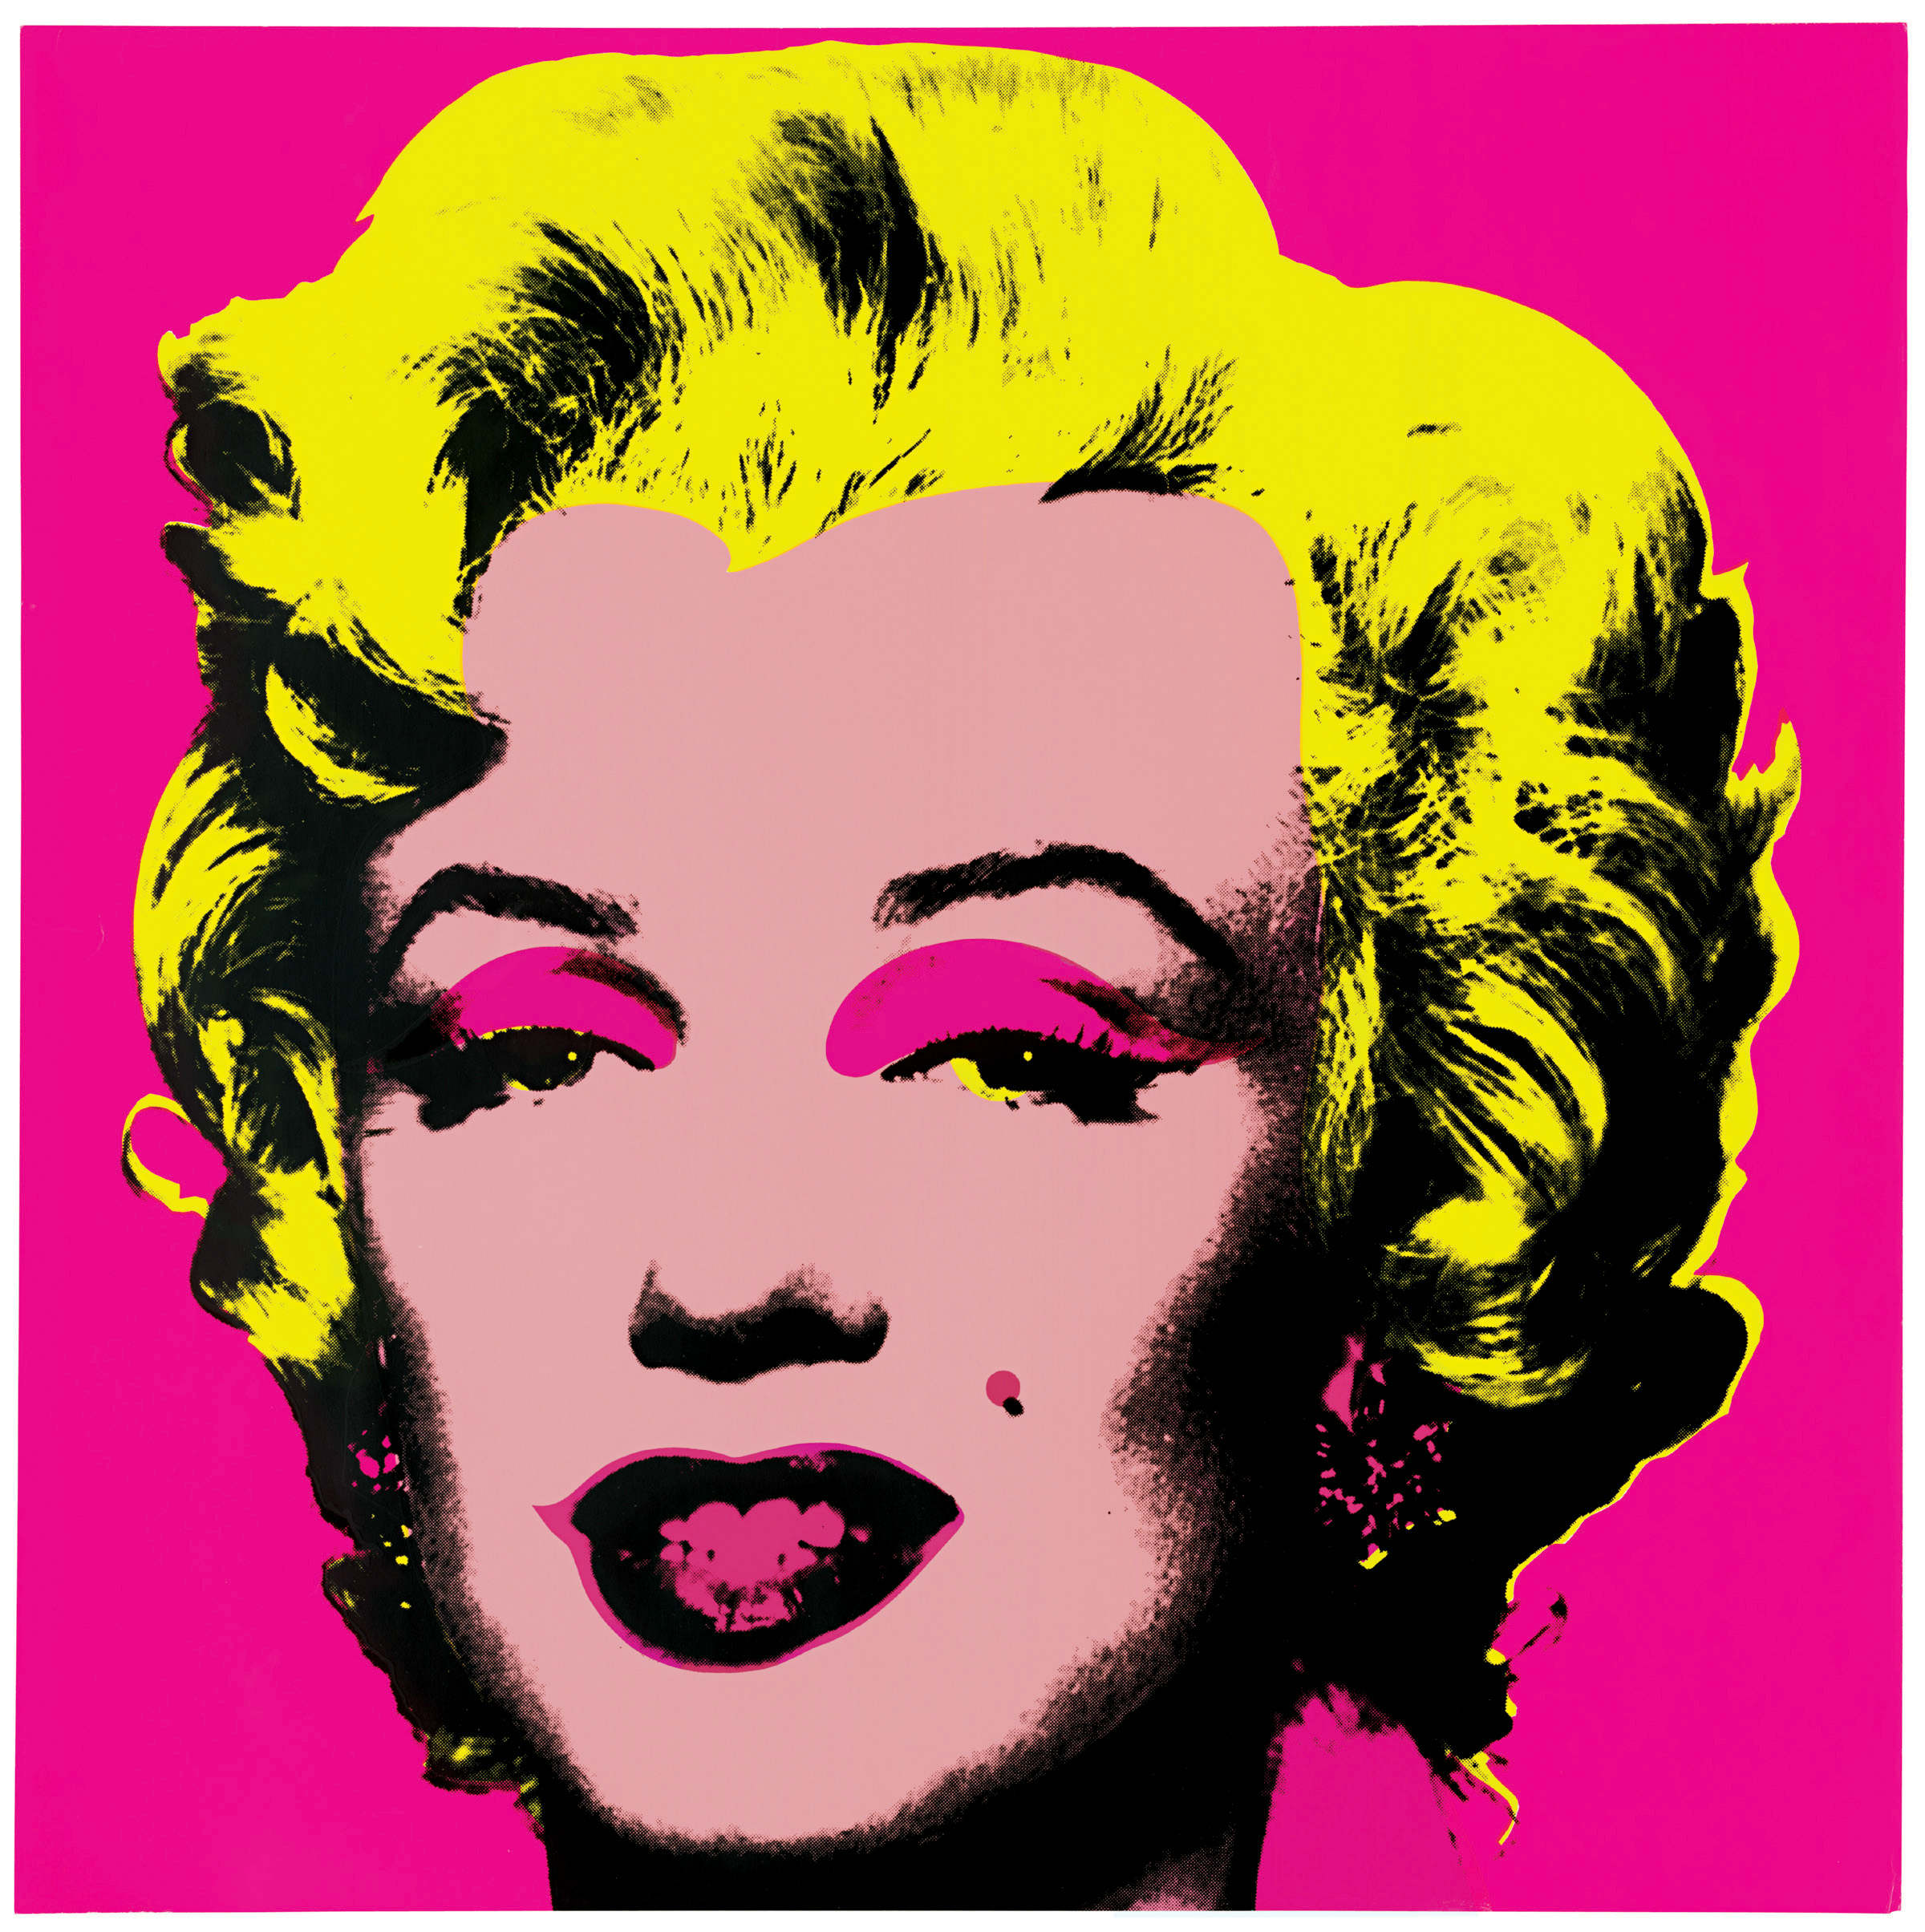 Marilyn Pop Art Andy Warhol Andy Warhol Prints Art Un Signed Painting Lionel